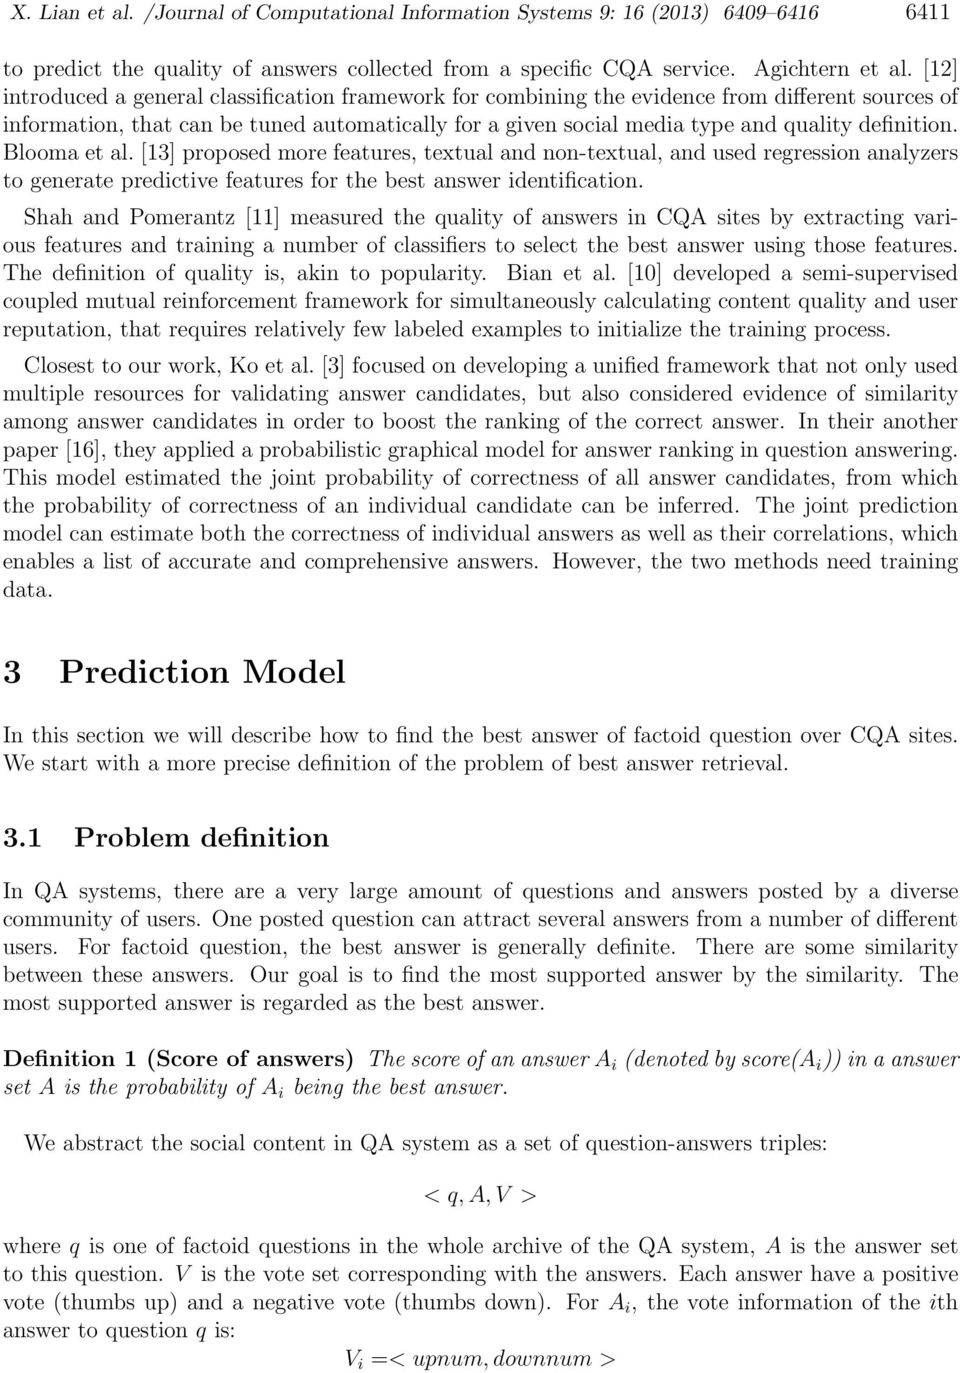 definition. Blooma et al. [13] proposed more features, textual and non-textual, and used regression analyzers to generate predictive features for the best answer identification.